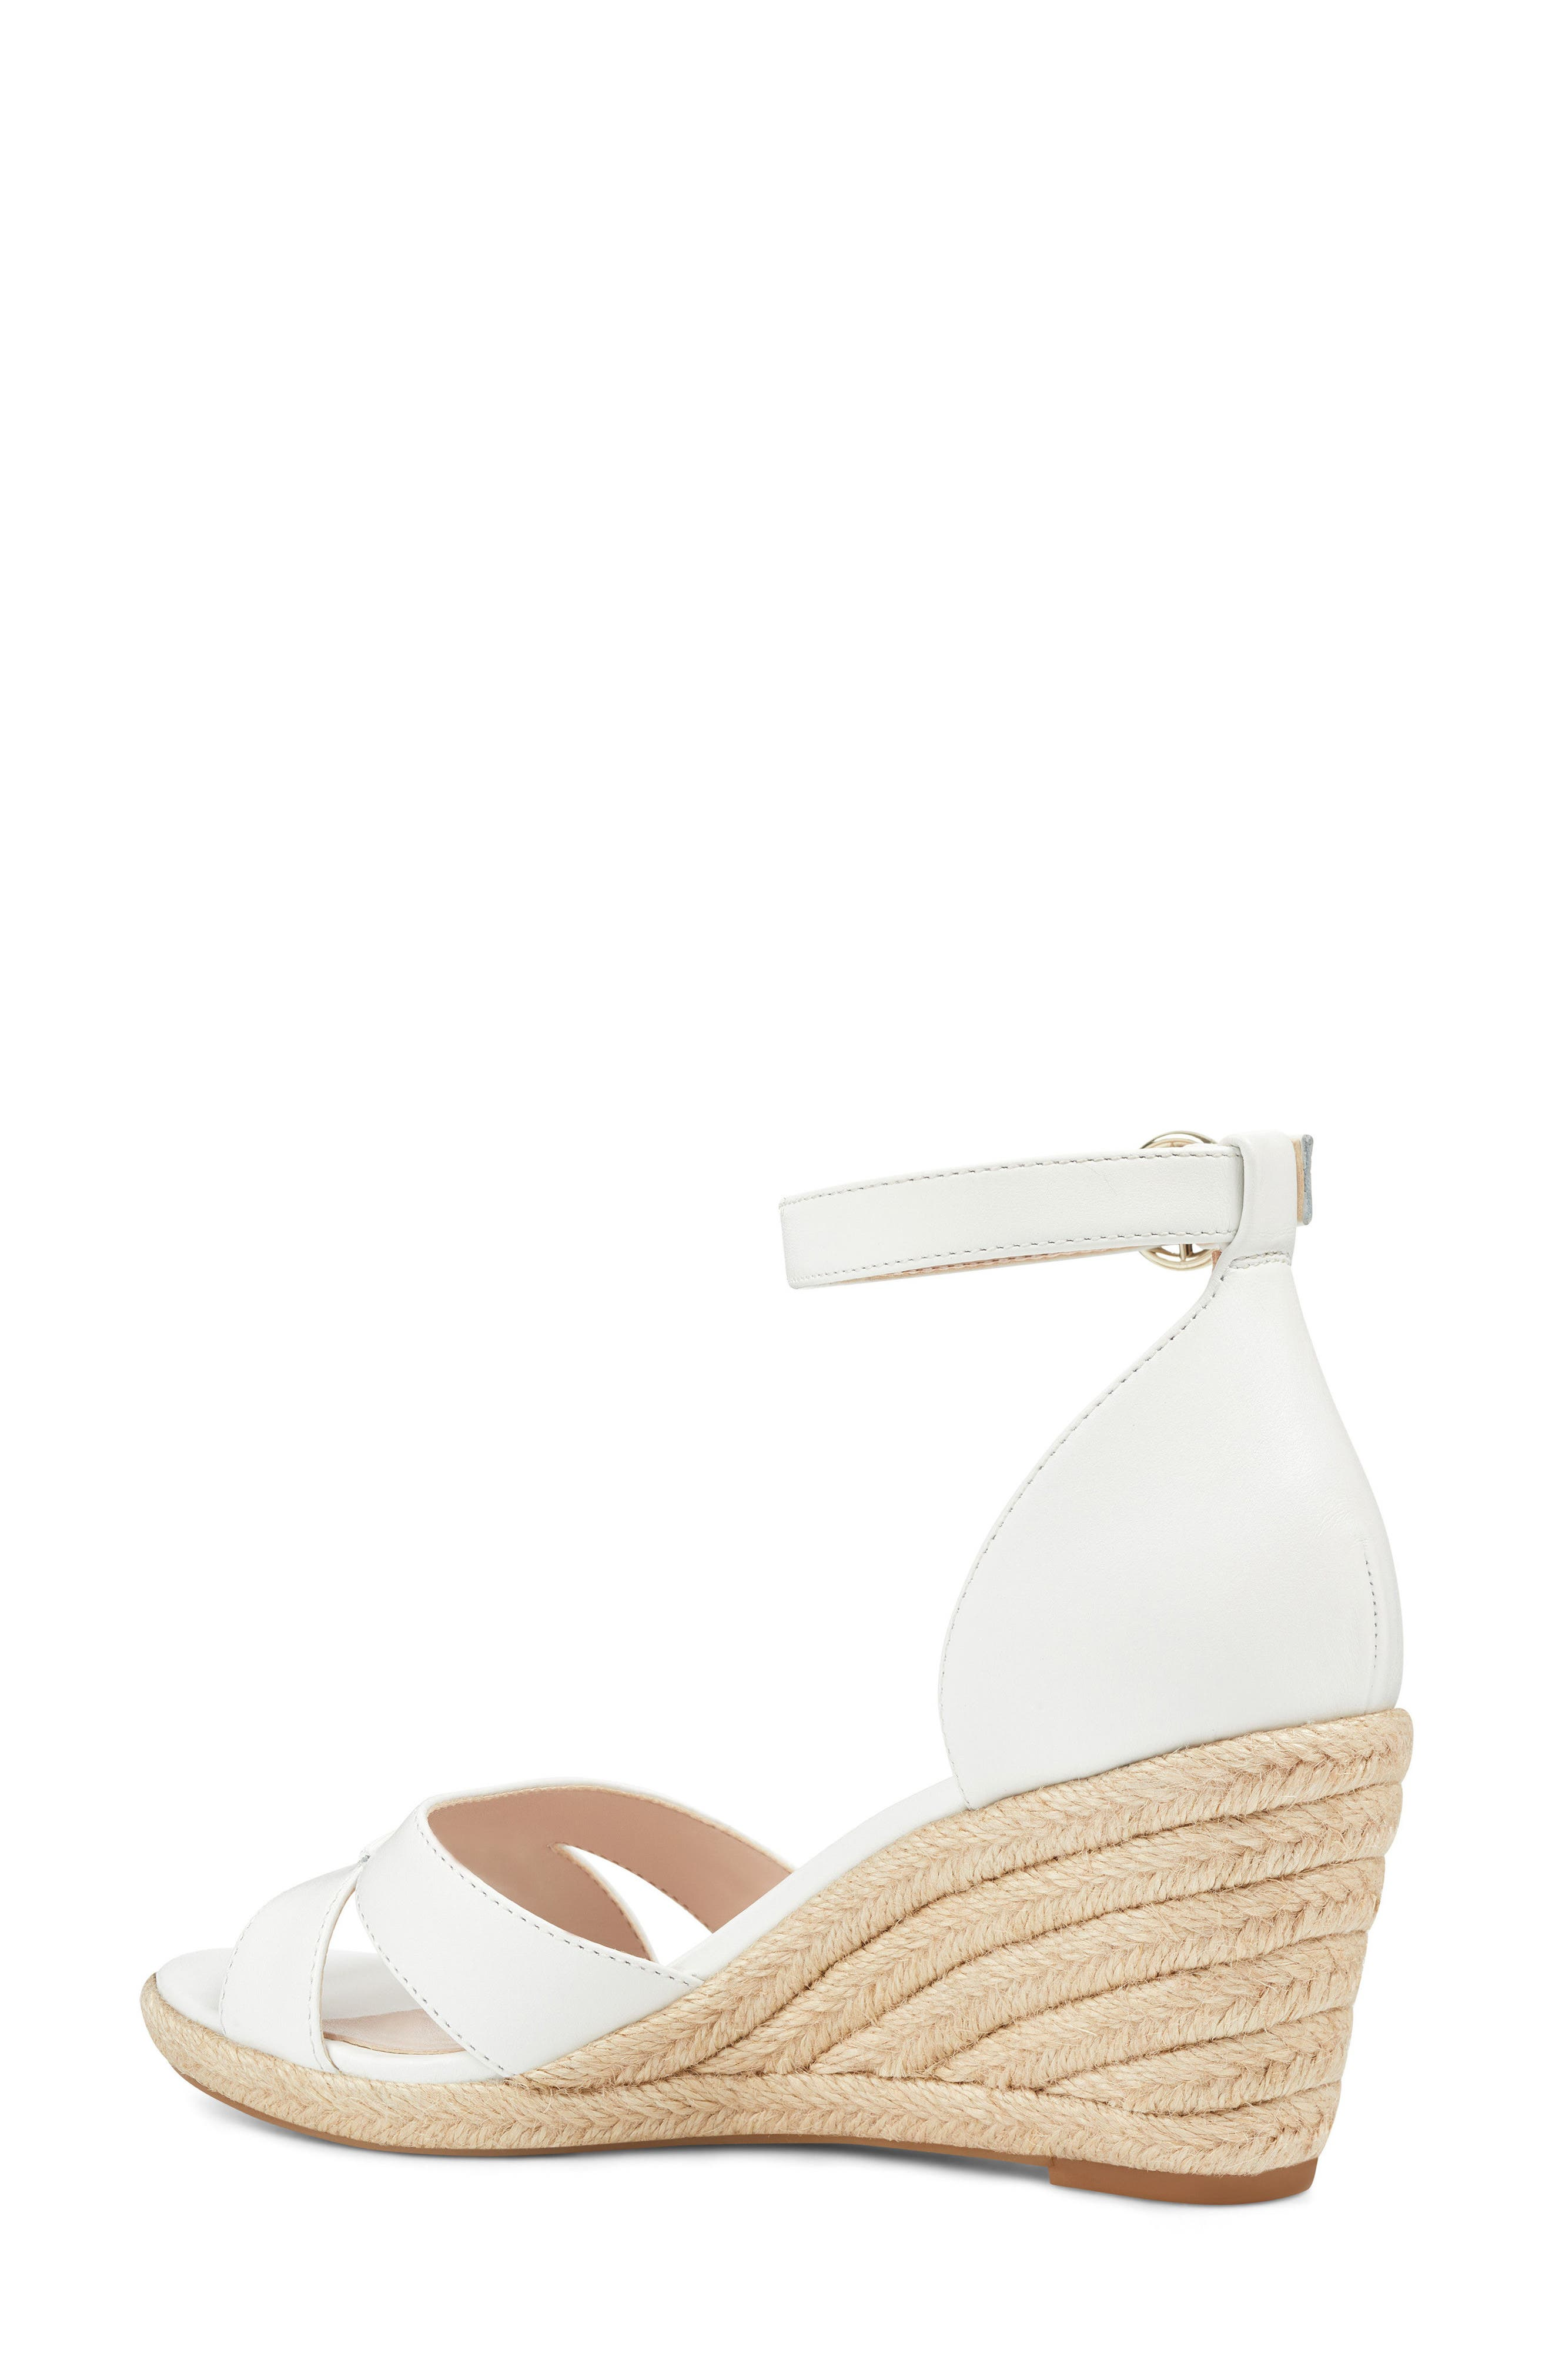 Jeranna Espadrille Wedge Sandal,                             Alternate thumbnail 2, color,                             WHITE LEATHER